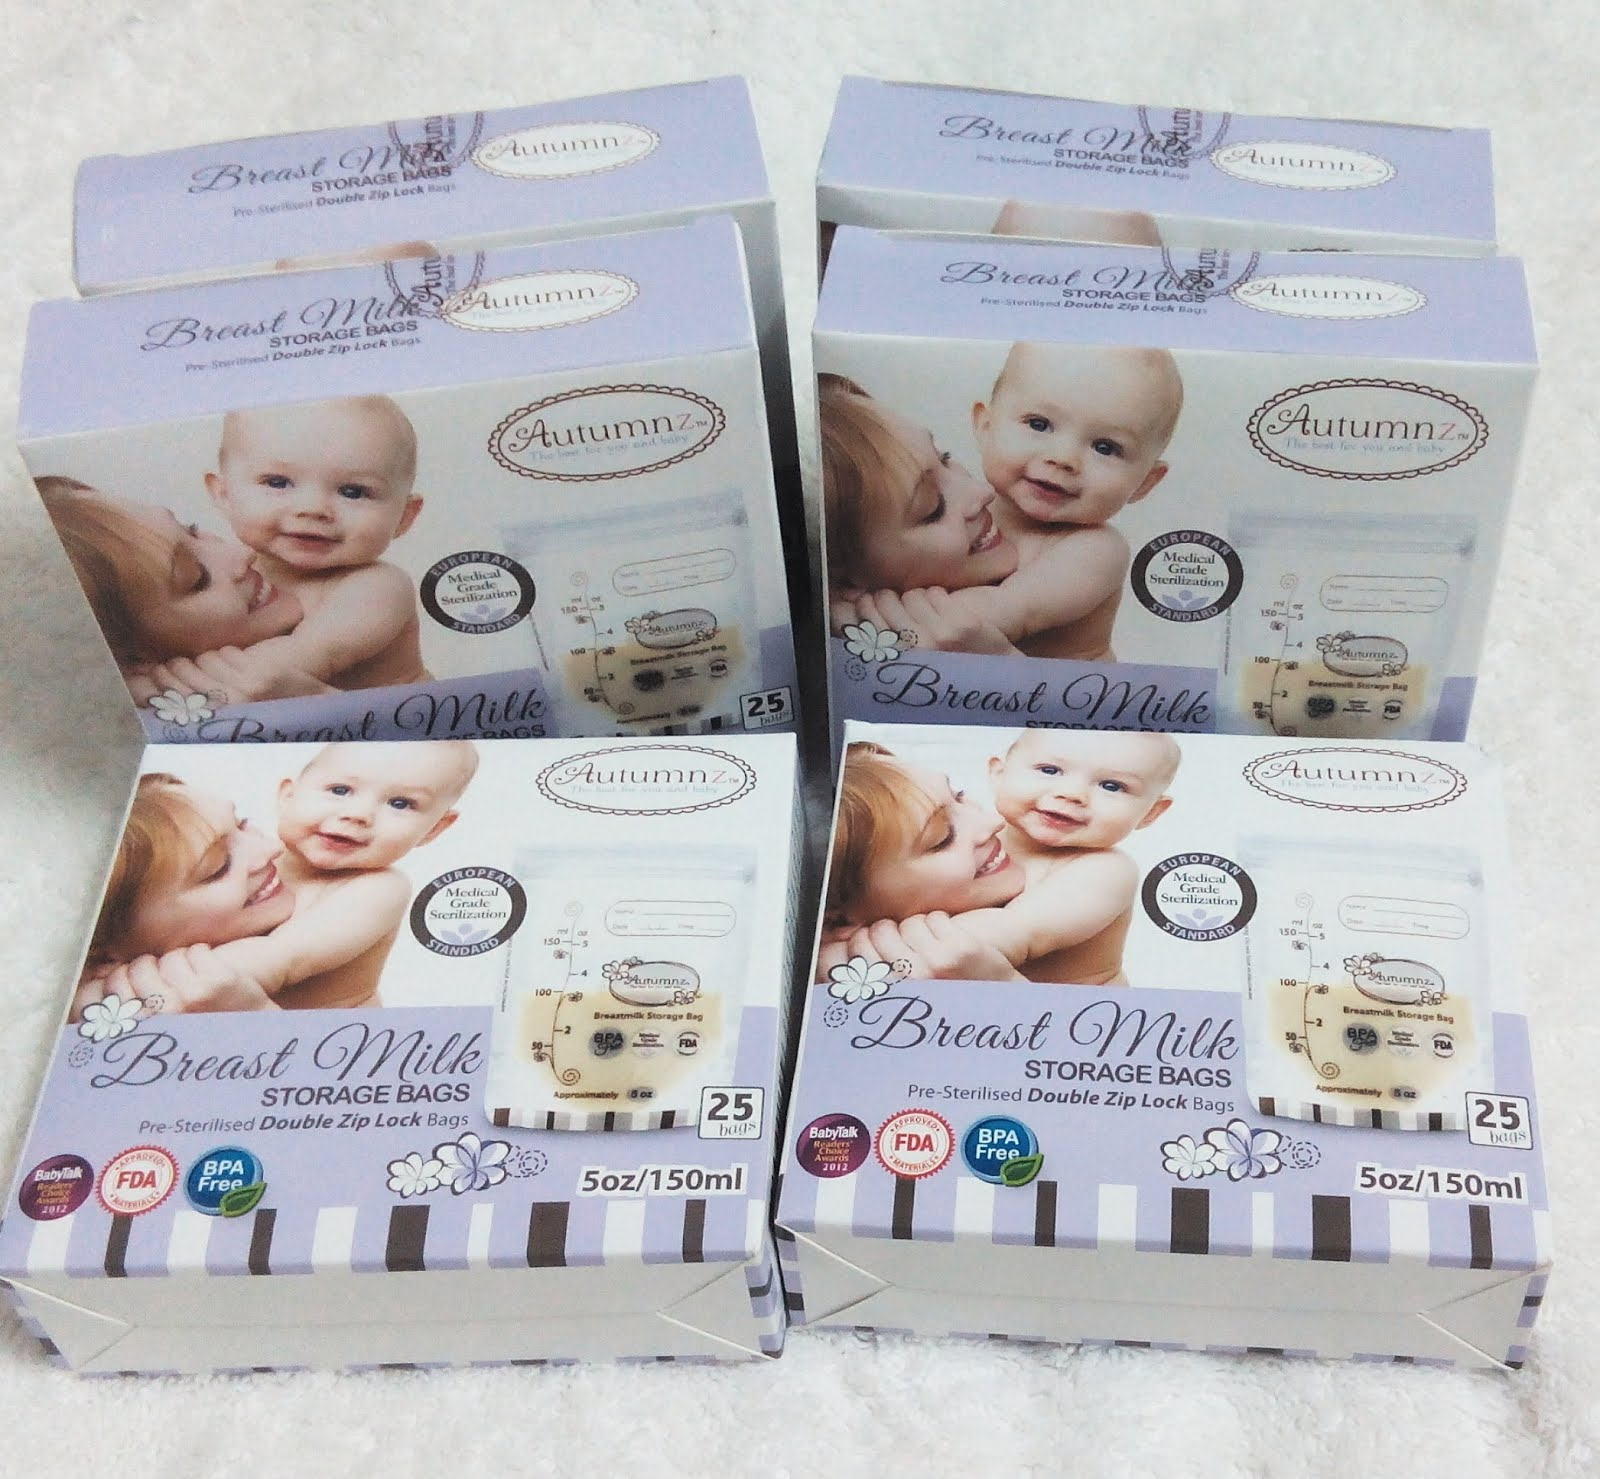 Autumnz Breastmilk Storage Bags